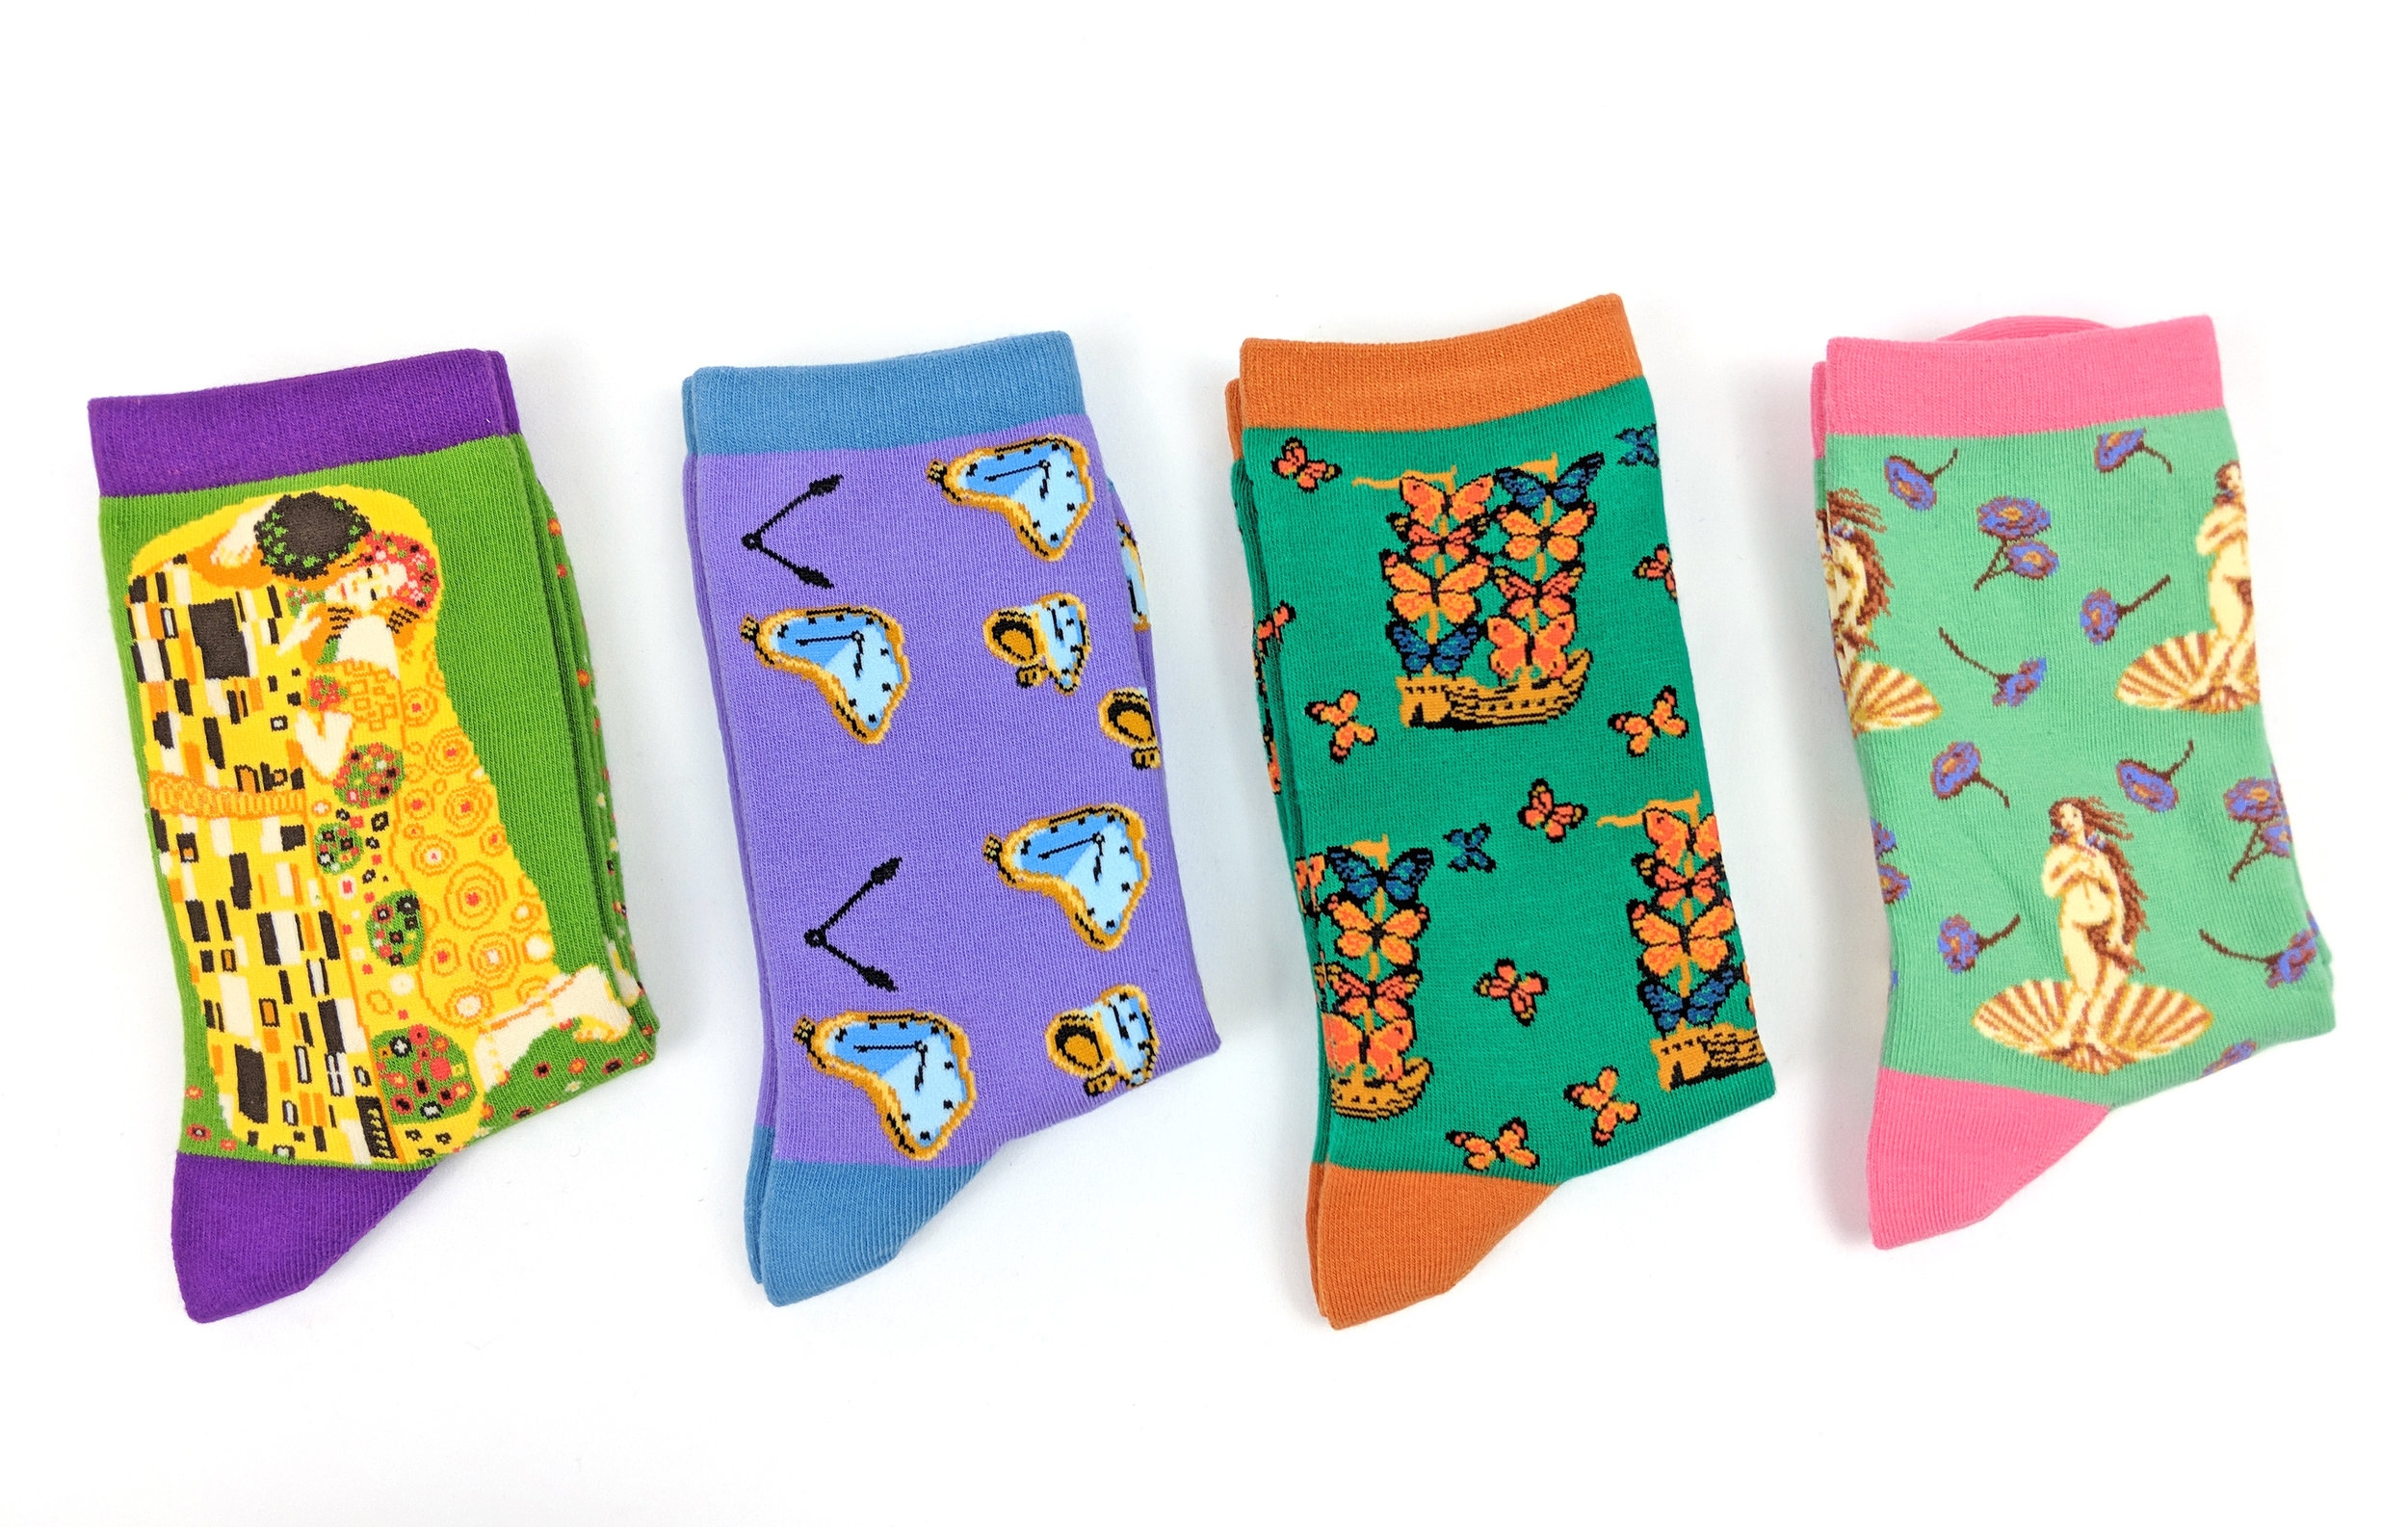 Imagery Socks, featuring famous artwork - Photo Credit: The Sock Review